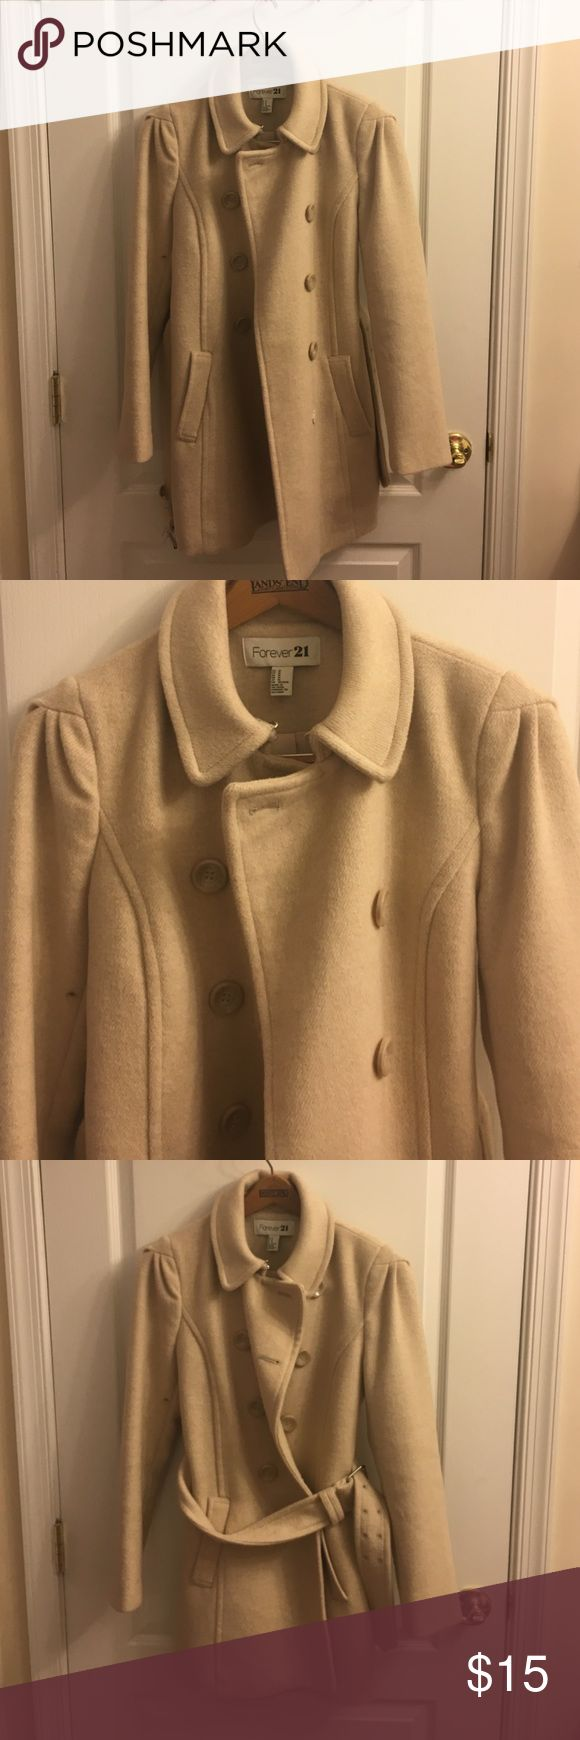 Forever 21 cream jacket This forever 21 jacket is in a cream color with light-marbled buttons. It also has a removable belt for cinching the waste. It has been worn 1 or 2 times. I am 5 7 and it hits halfway between hips and knee. Forever 21 Jackets & Coats Pea Coats